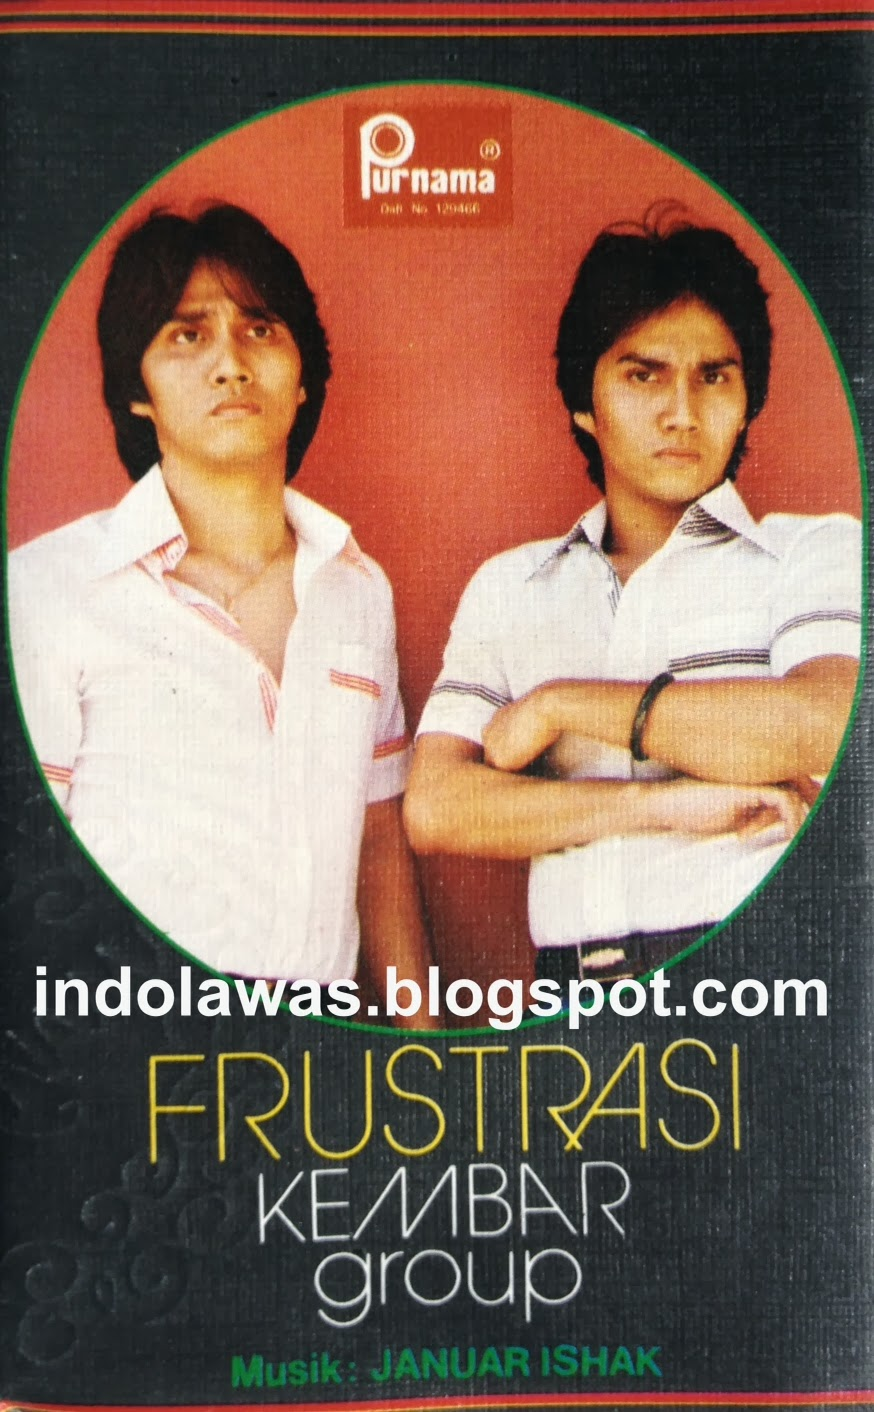 Indolawas Kembar Group Frustrasi